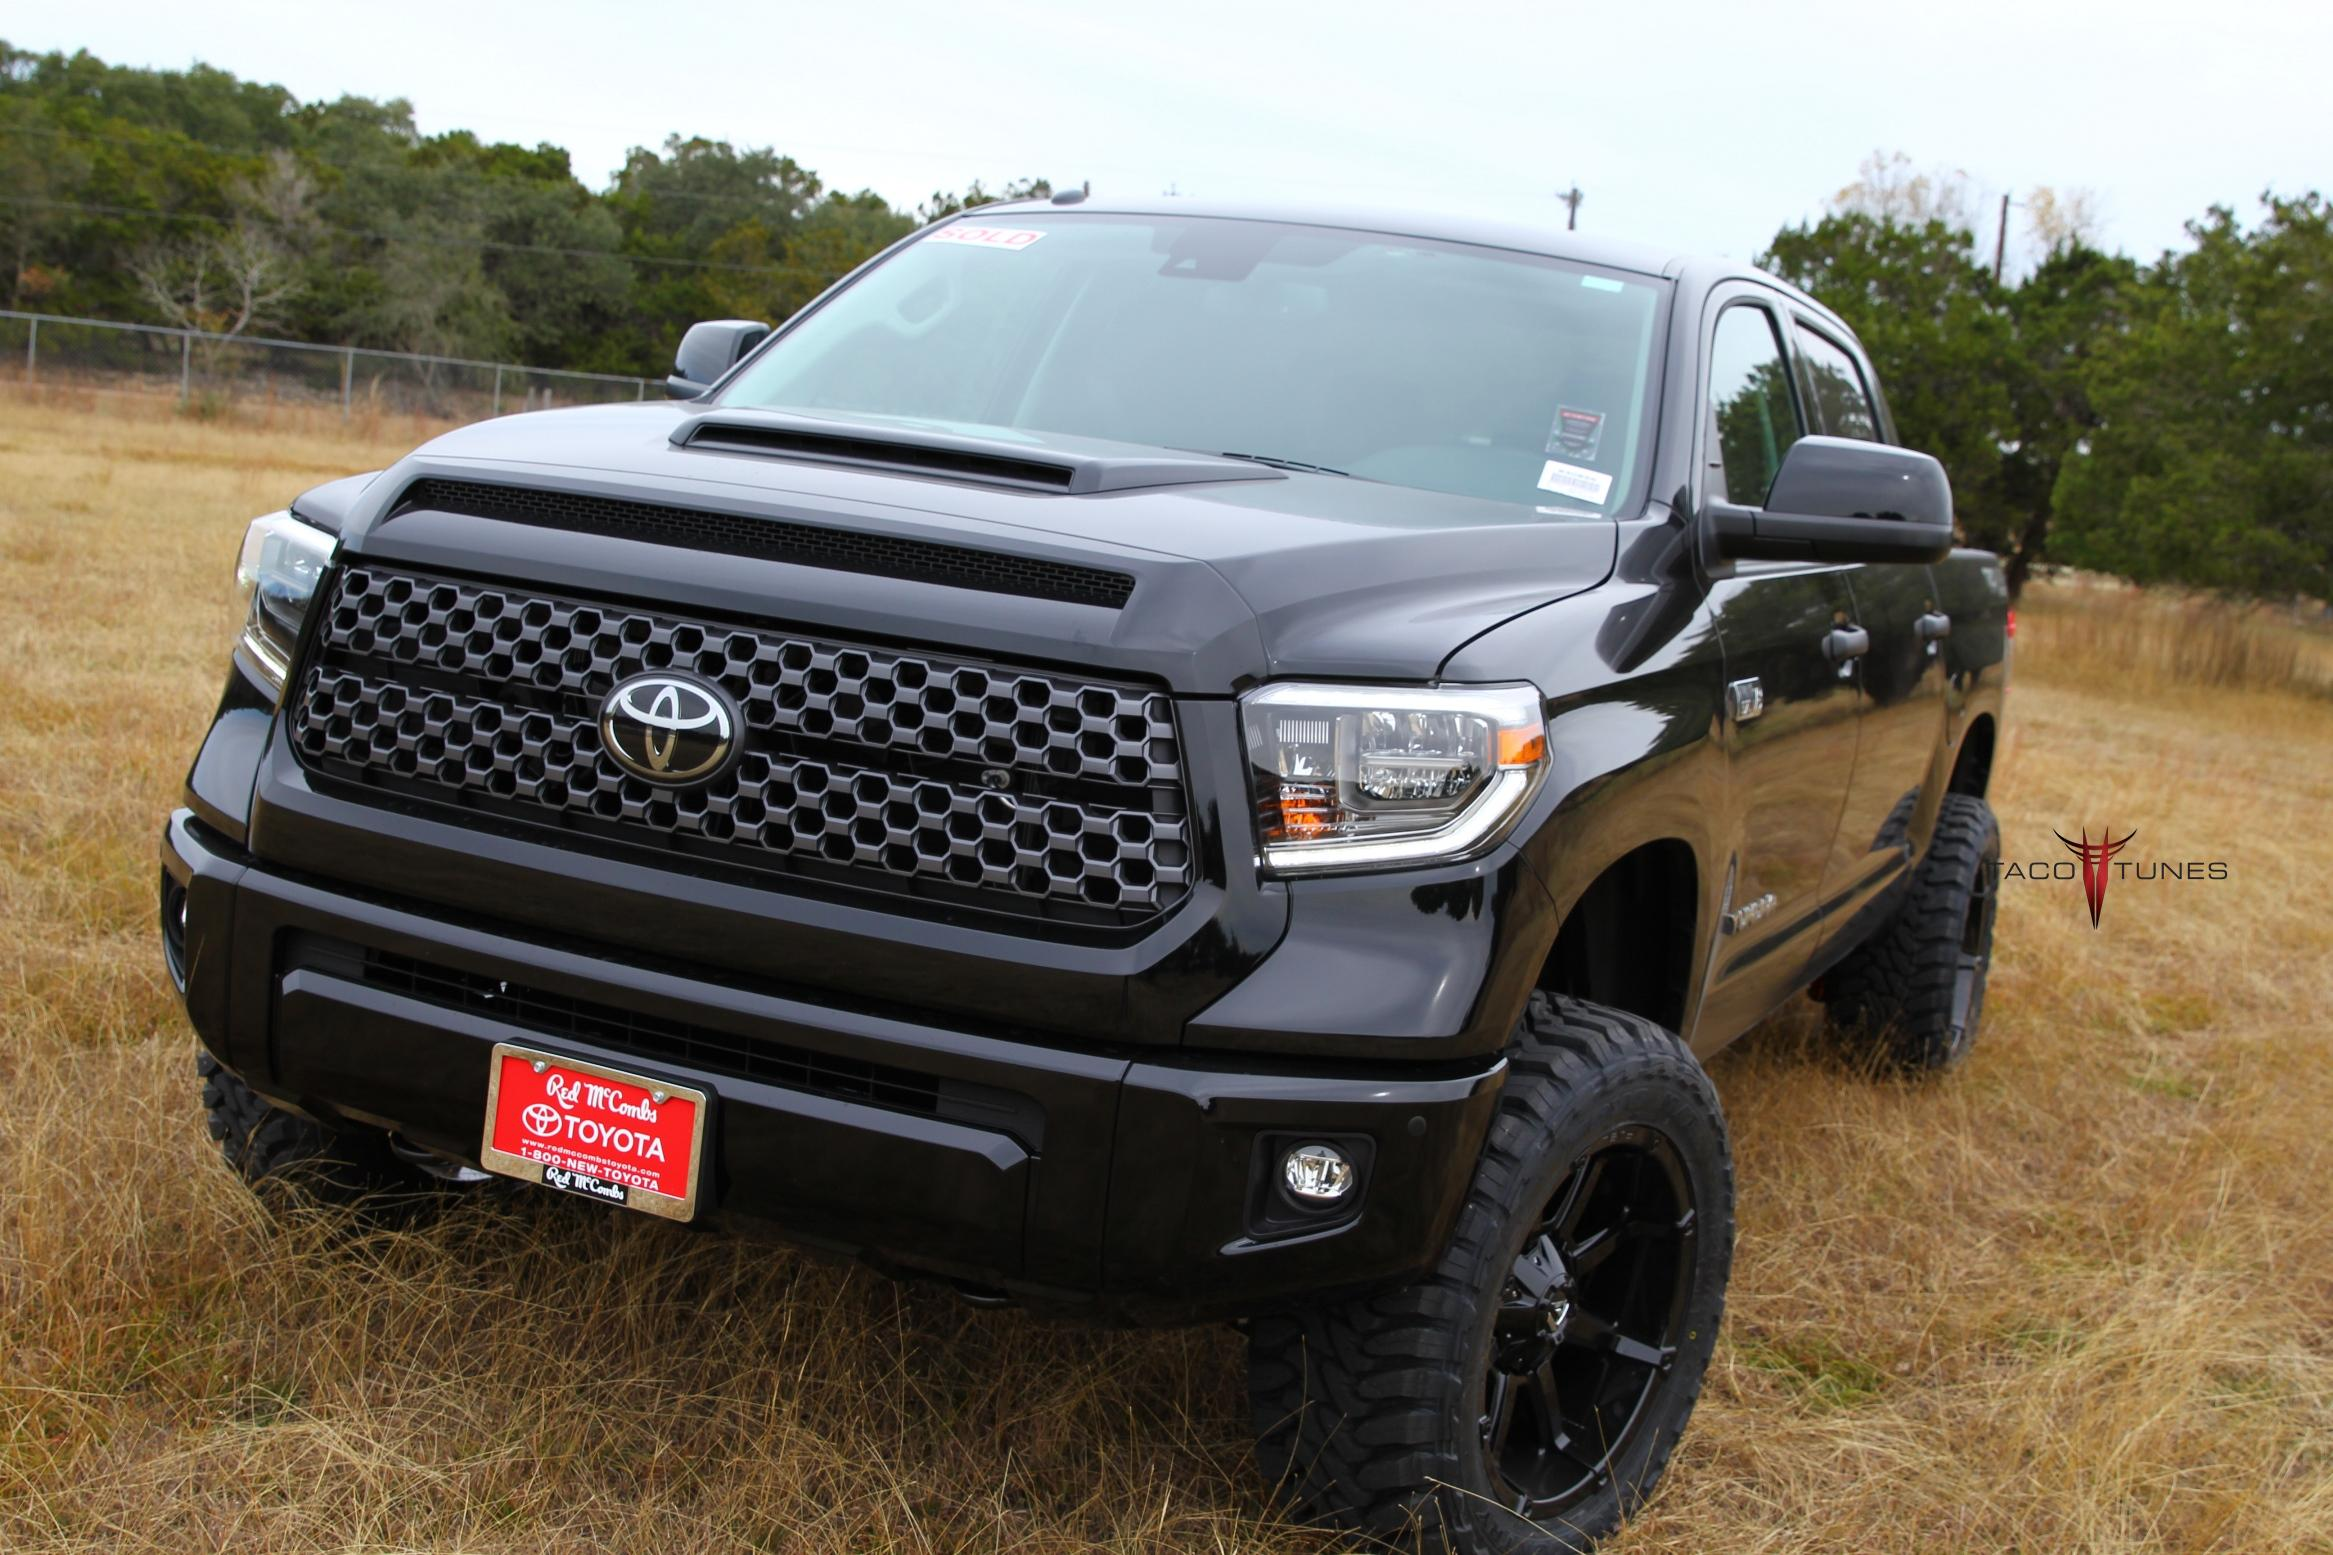 2018 toyota tundra trd sport 4x4 14 taco tunes toyota audio solutions. Black Bedroom Furniture Sets. Home Design Ideas